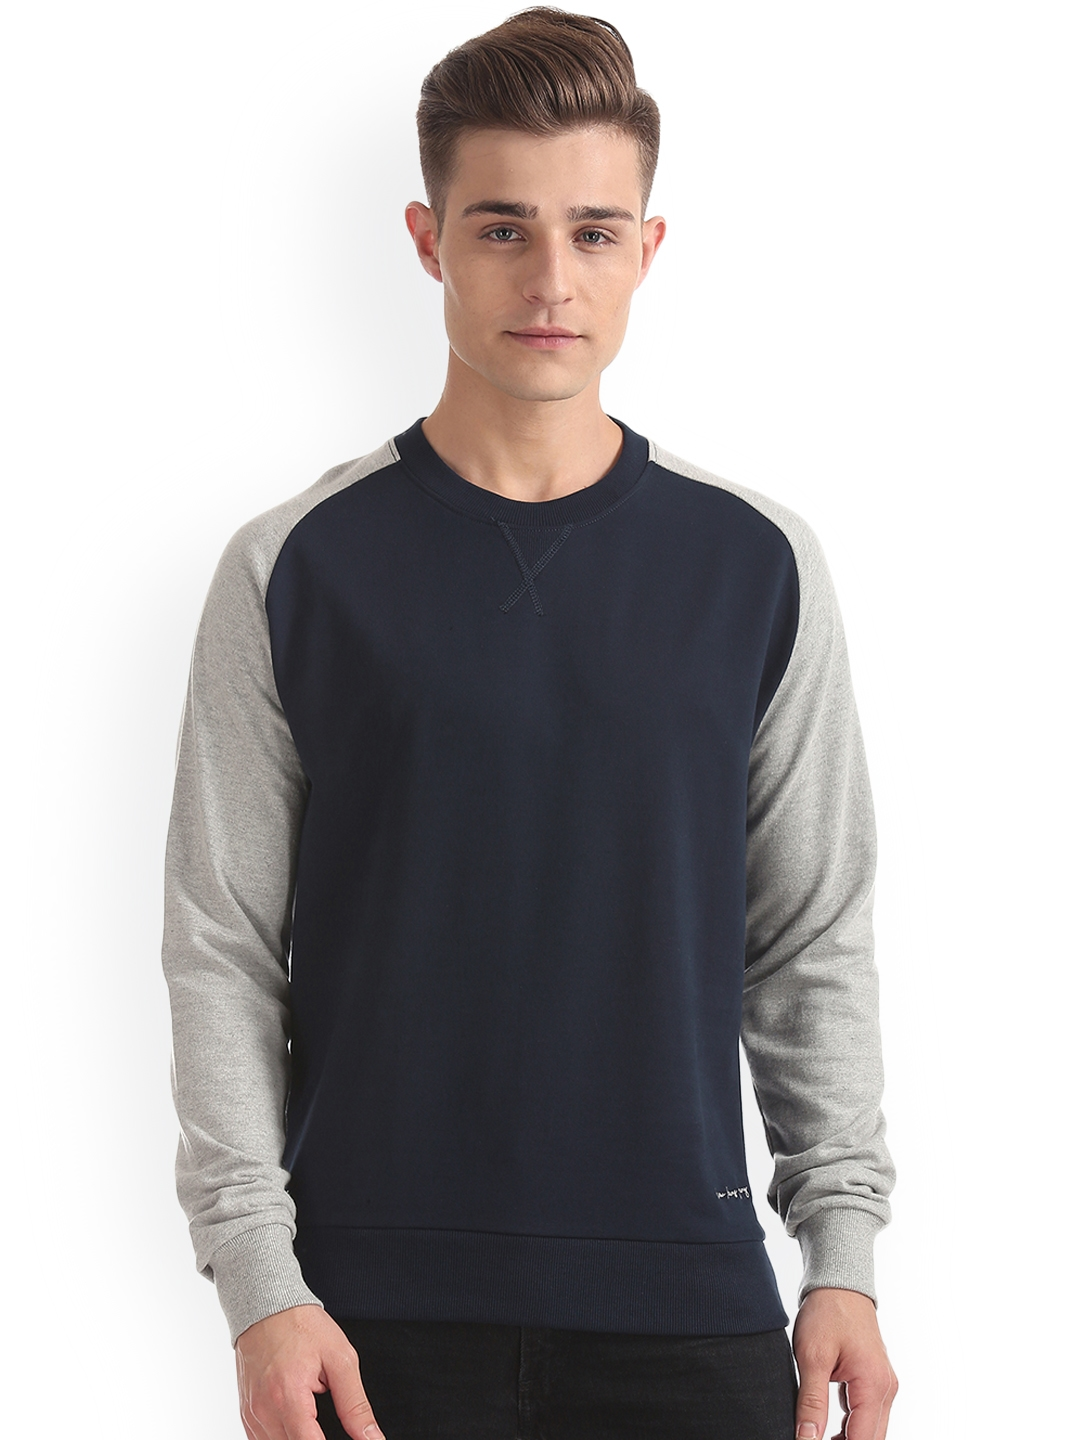 Arrow Blue Jean Co. Men Navy Blue   Grey Solid Sweatshirt